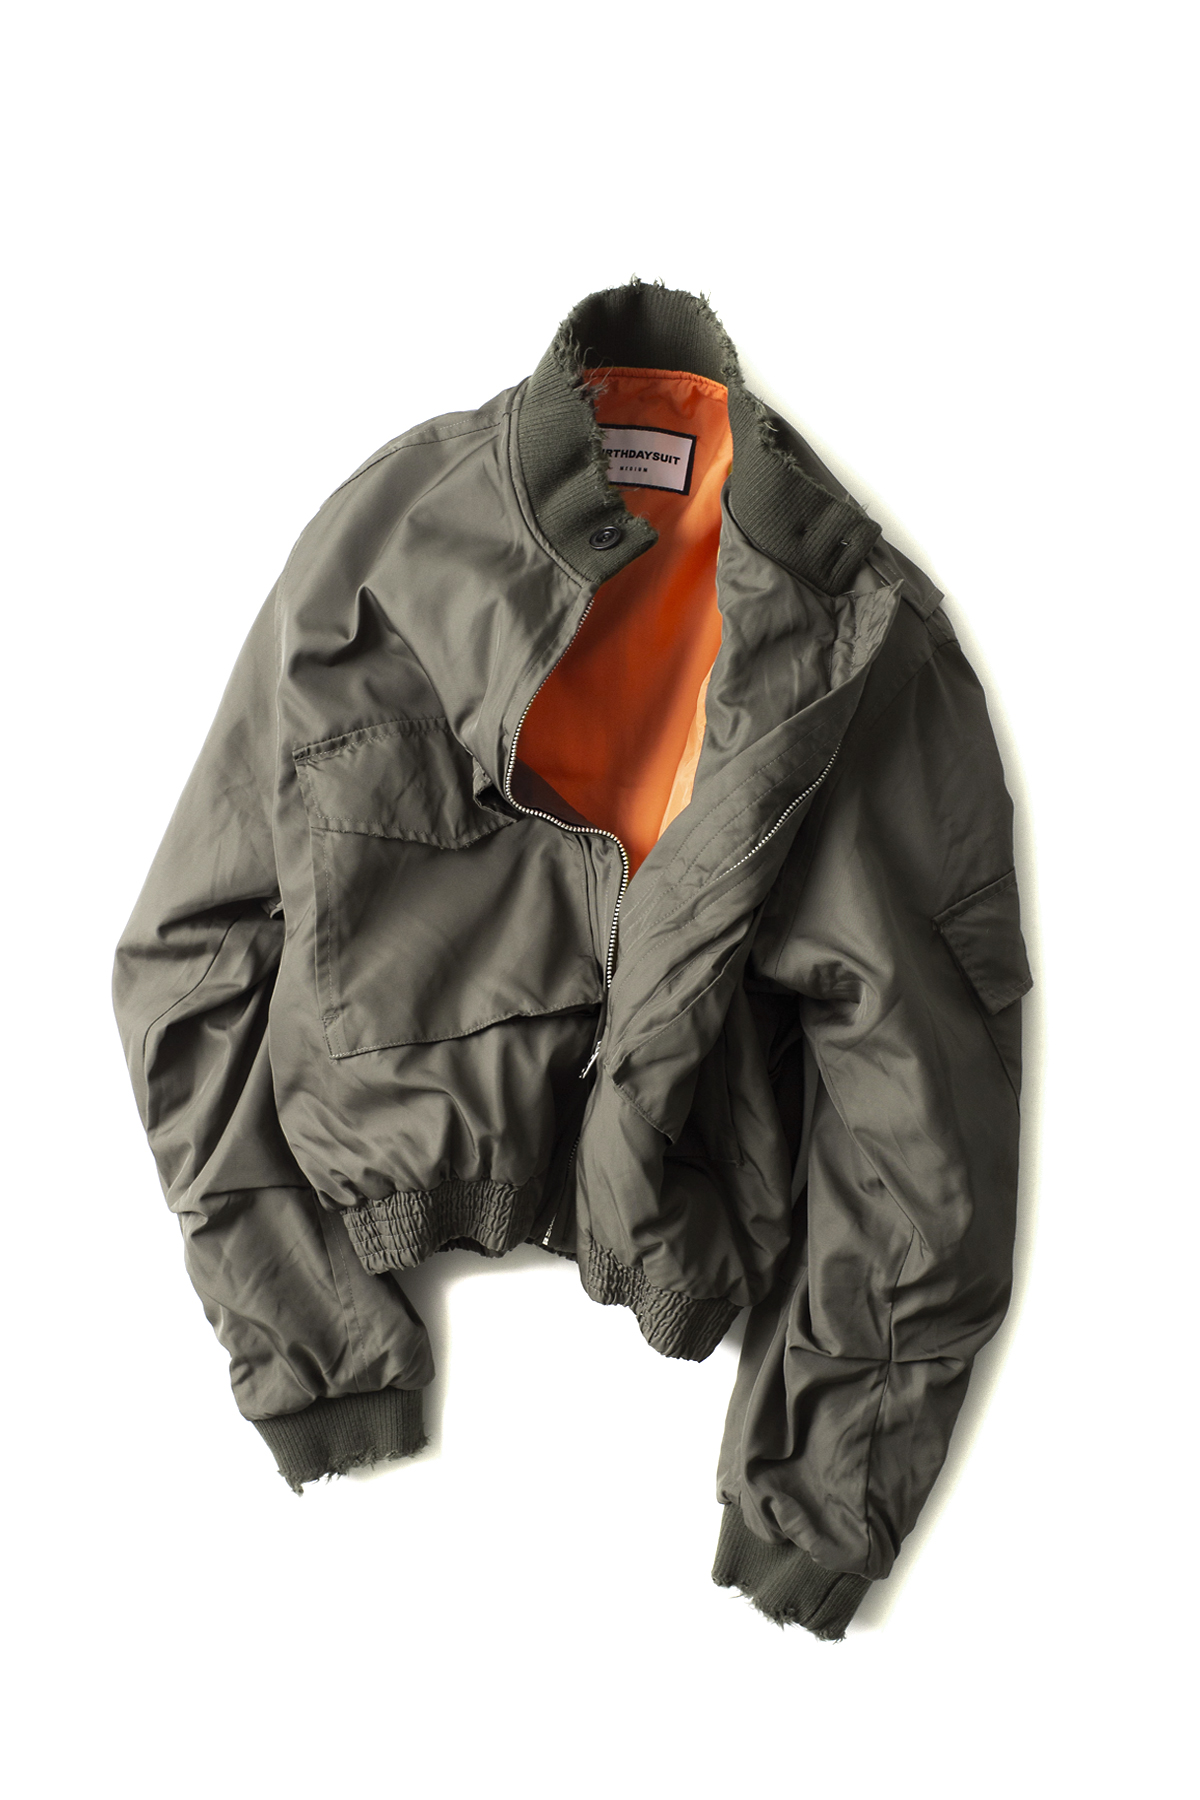 BIRTHDAYSUIT : G-8 Flight Jacket (Olive)